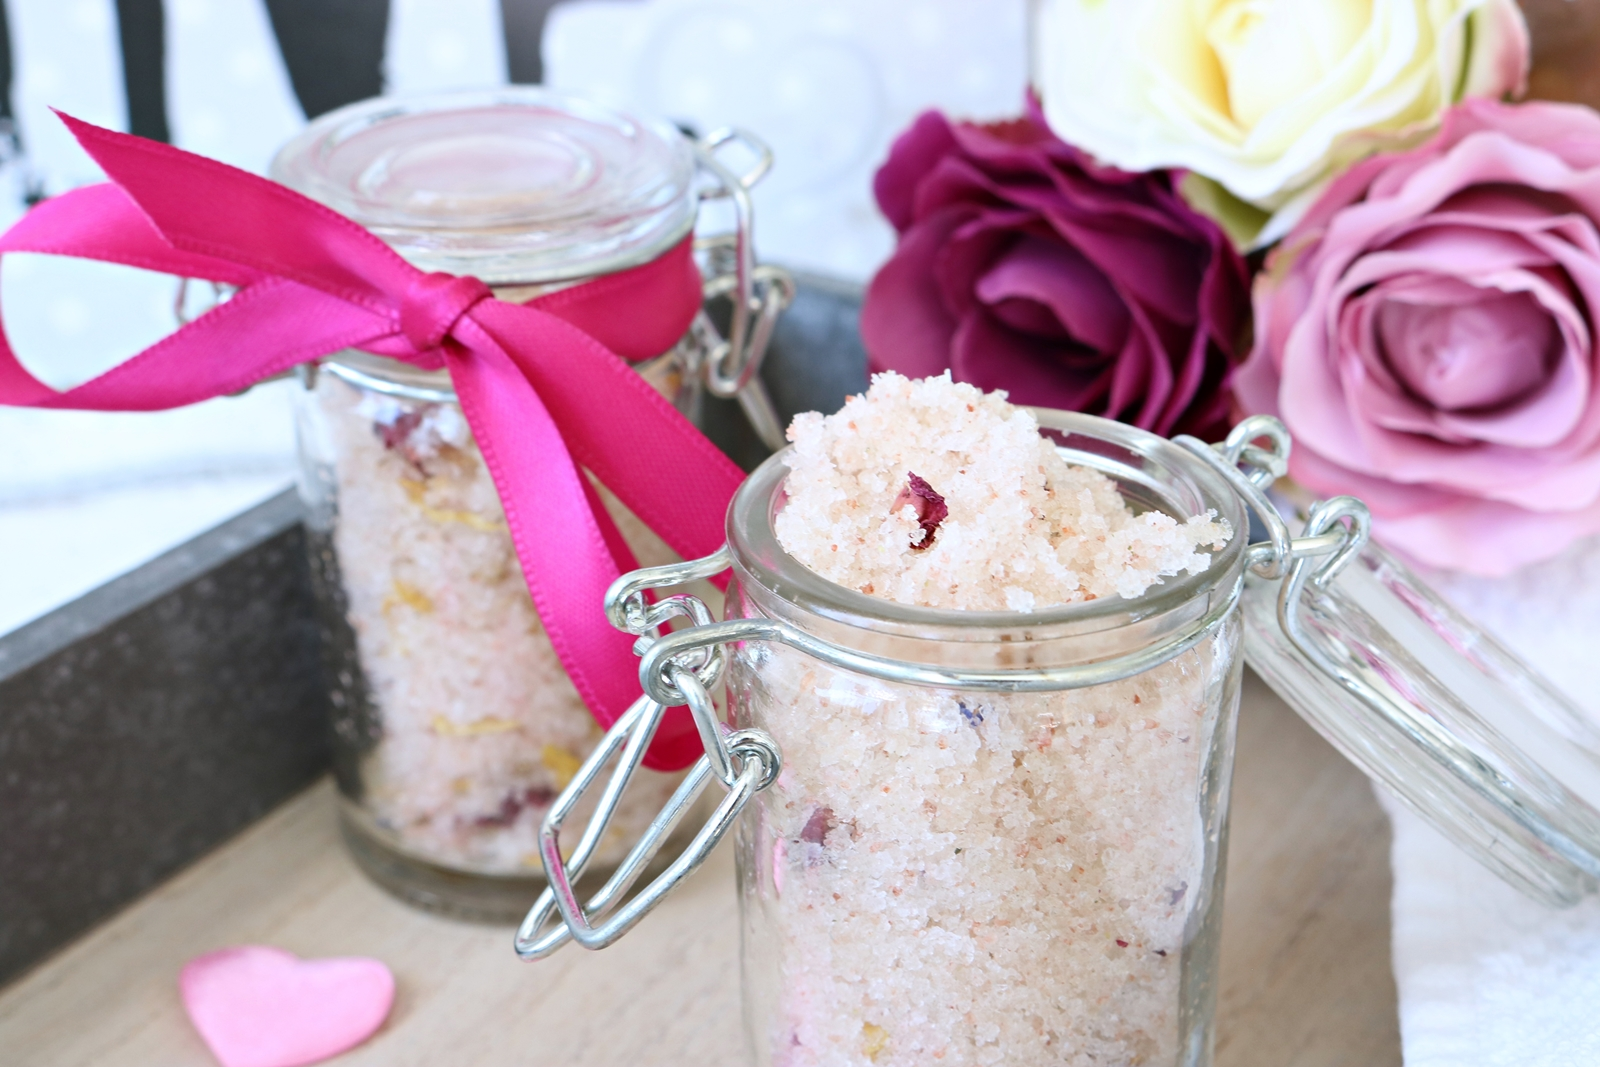 DIY Körperpeeling selber machen - einfach uns schnell - Geschenk - Body Scrub do it yourself - schnelle Geschenkidee - Fashionladyloves by Tamara Wagner Beautyblog